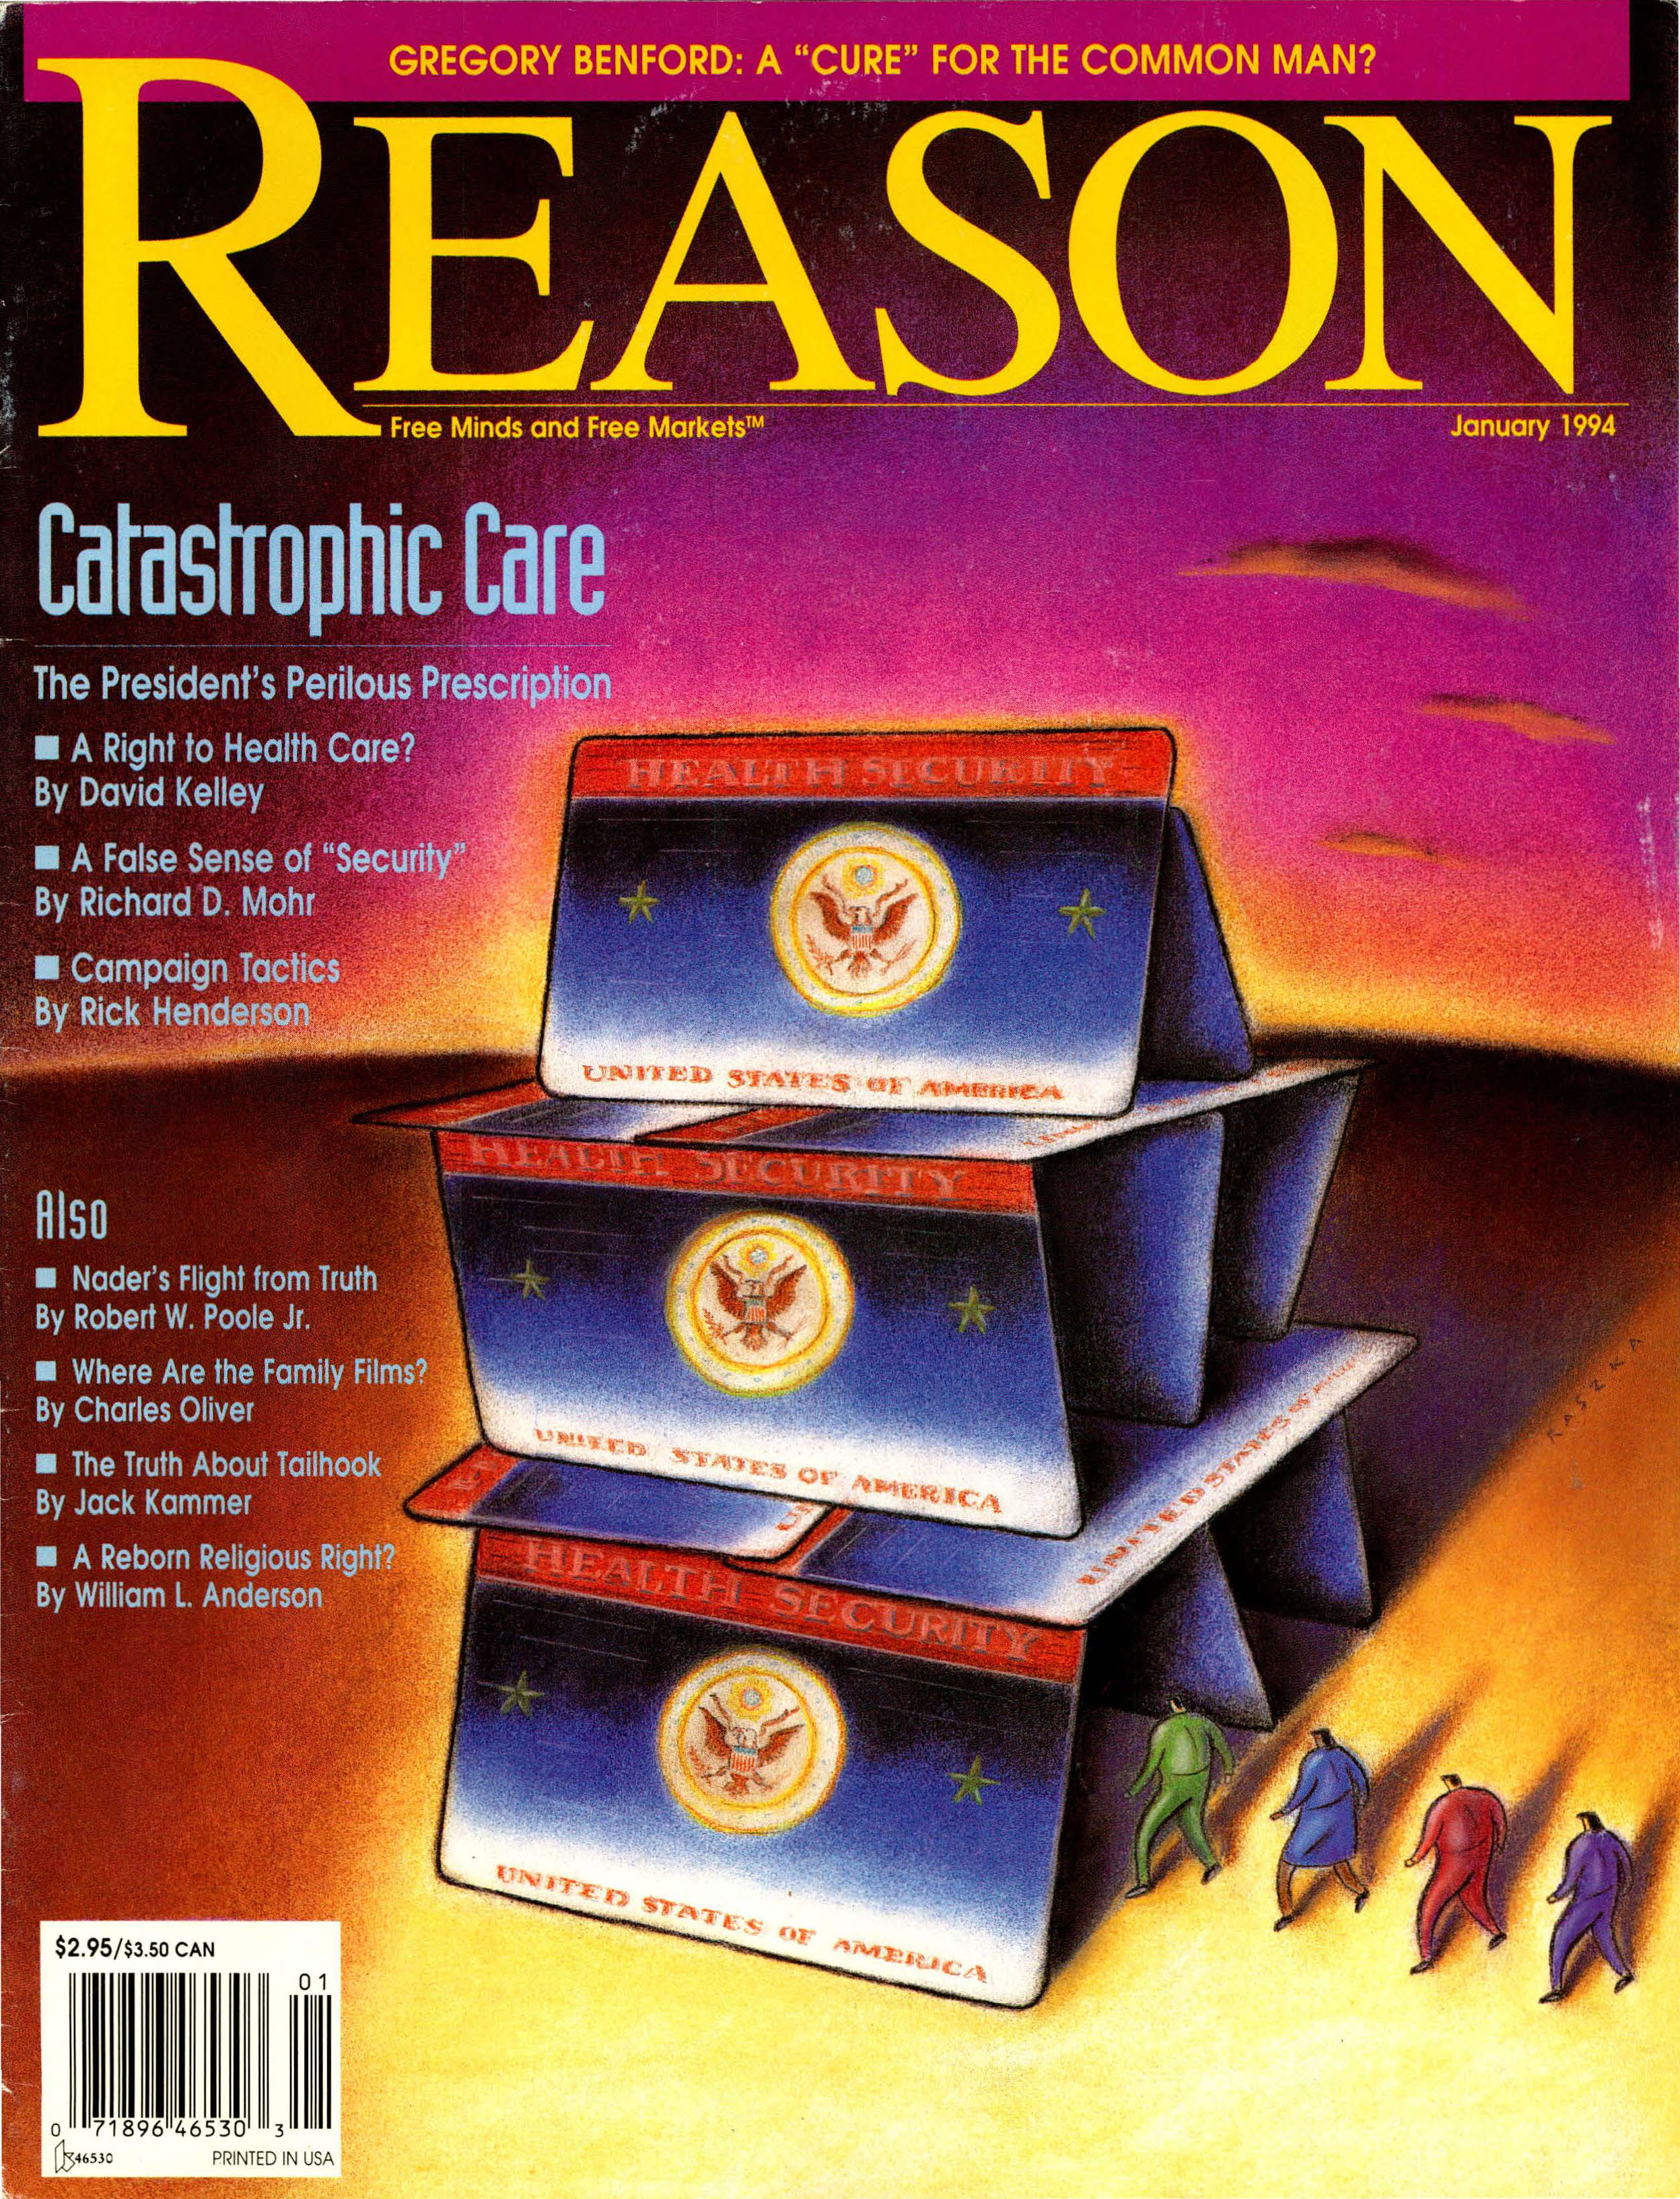 Reason Magazine, January 1994 cover image